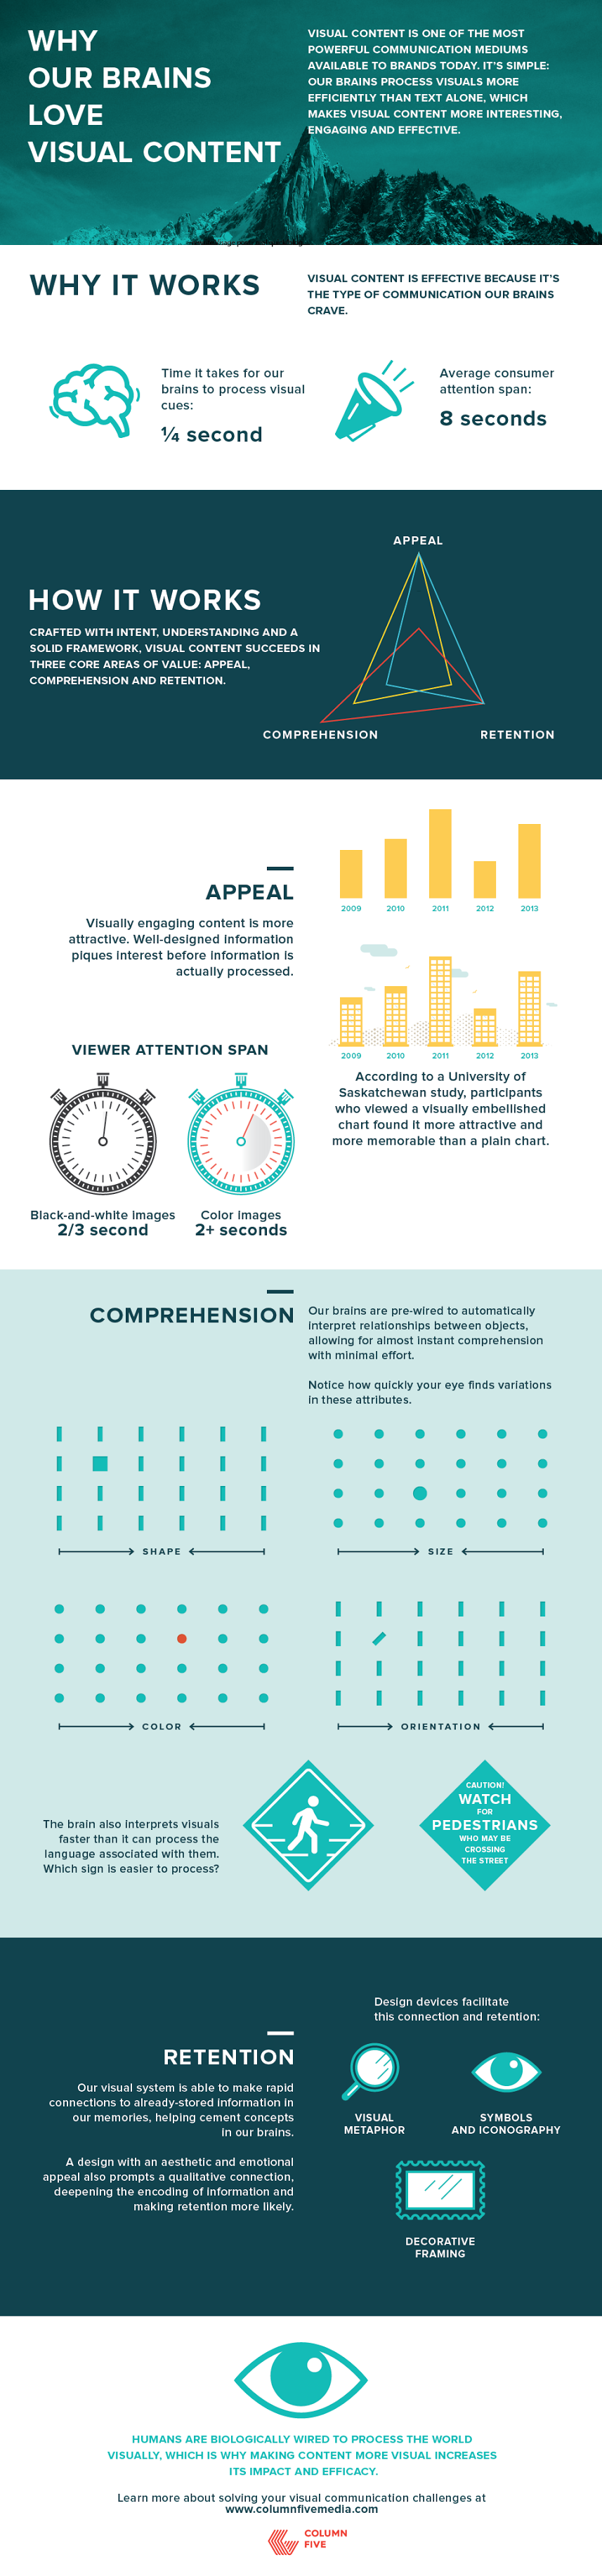 Why Our Brain Loves Visual Content - #infographic #Contentmarketing #socialmedia - Humans are biologically wired to process the world visually, which is why making content more visual increases its impact and efficacy.